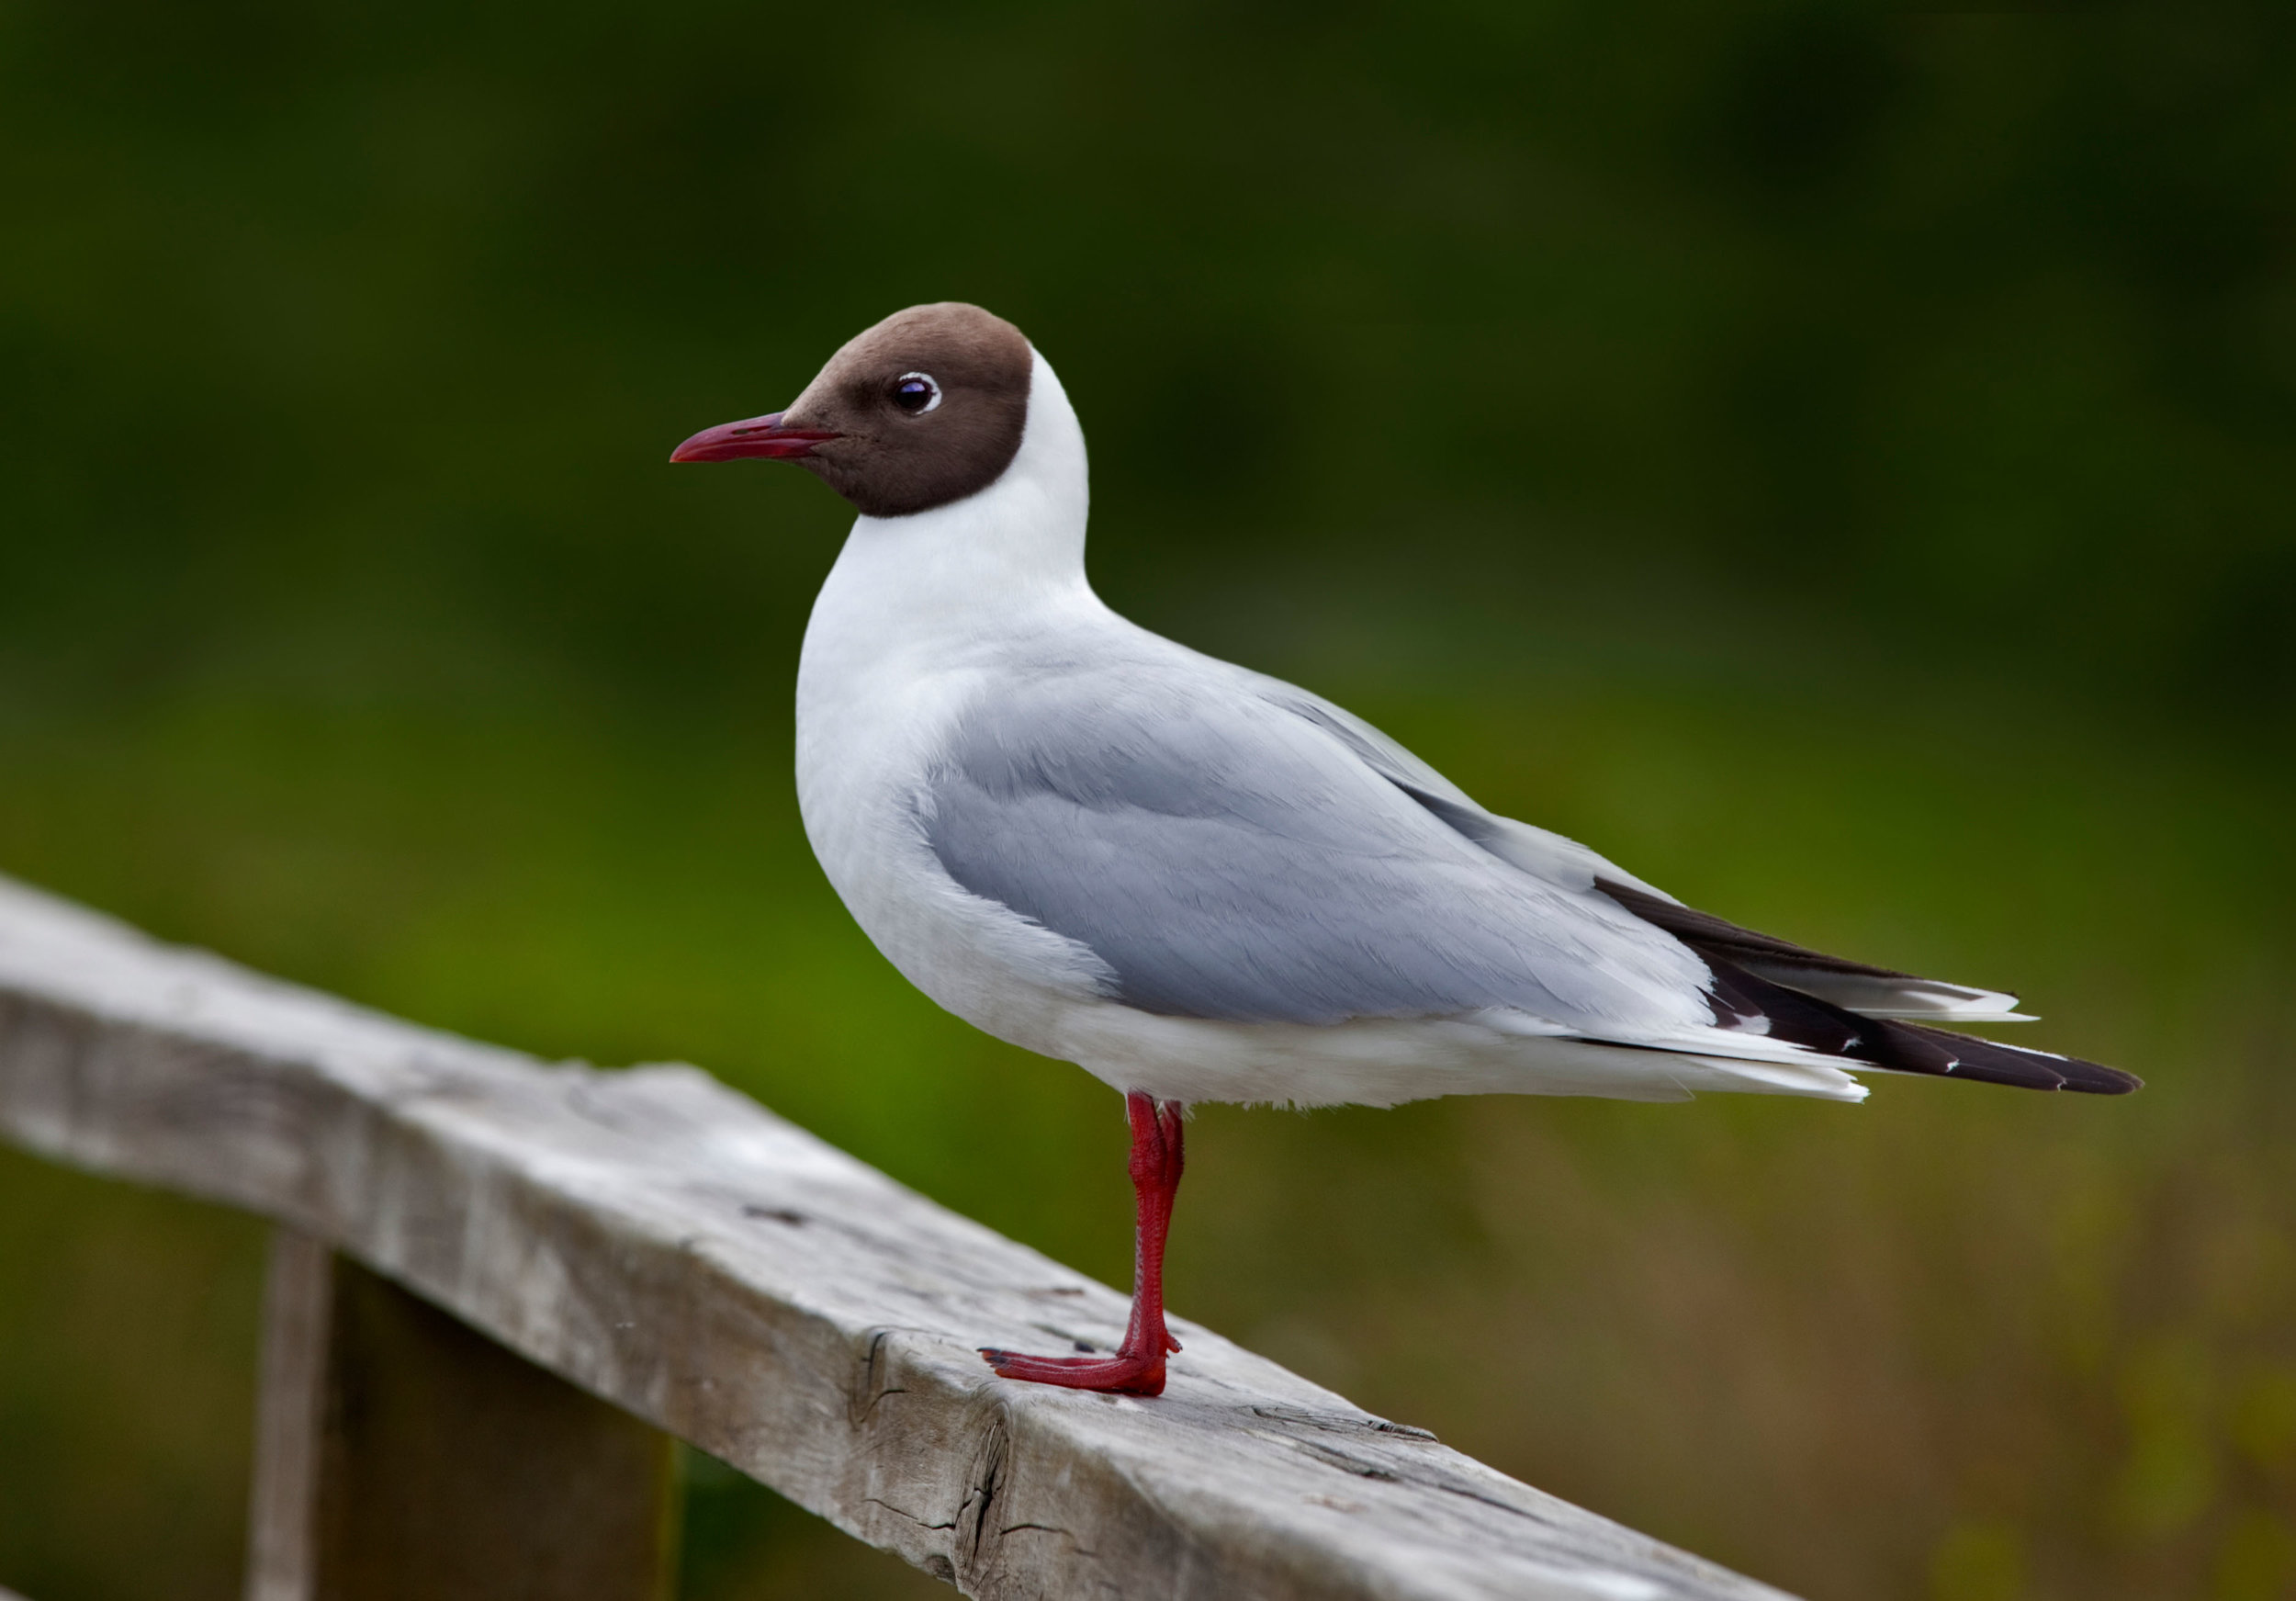 Adult summer Black-headed Gull